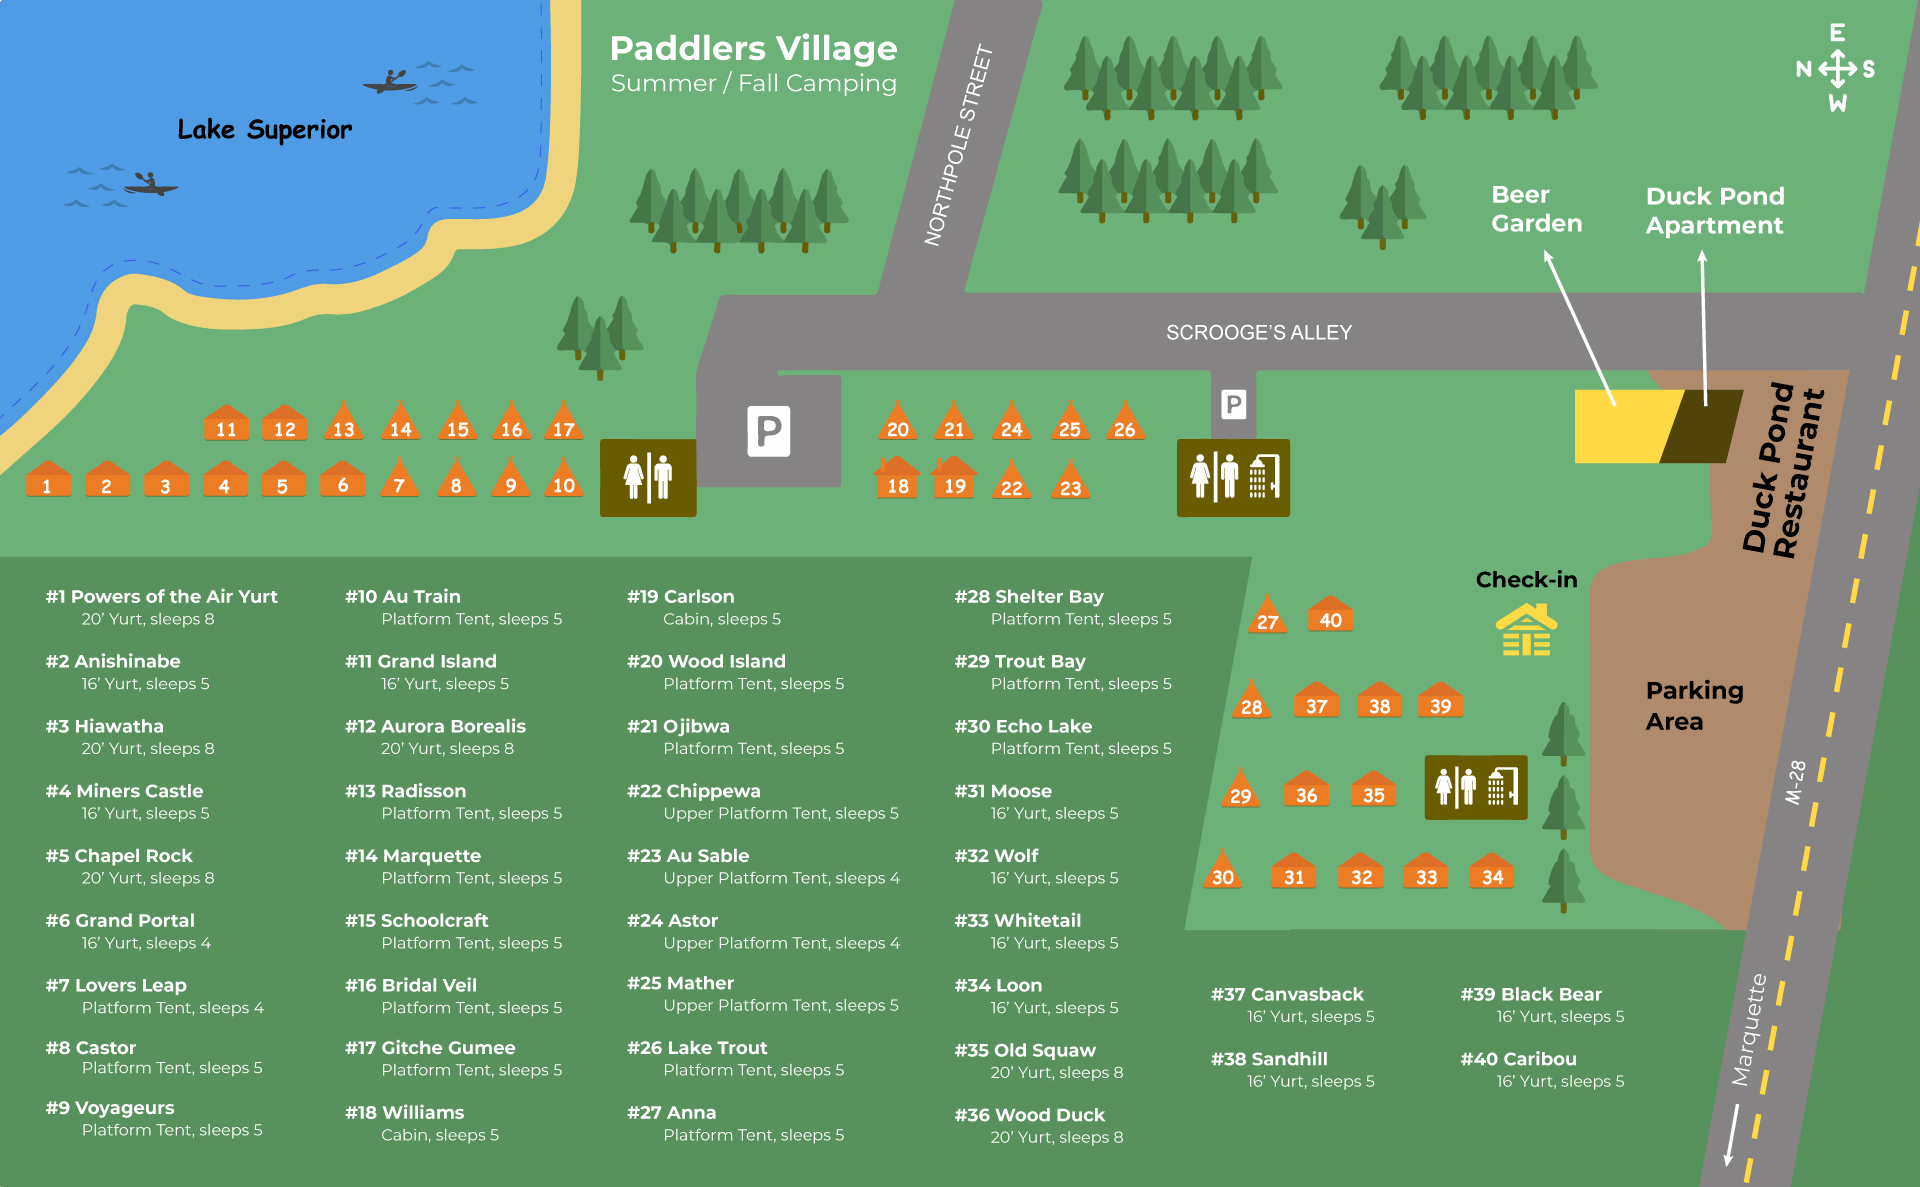 paddlers-village-map-2019-updated-on-9-25